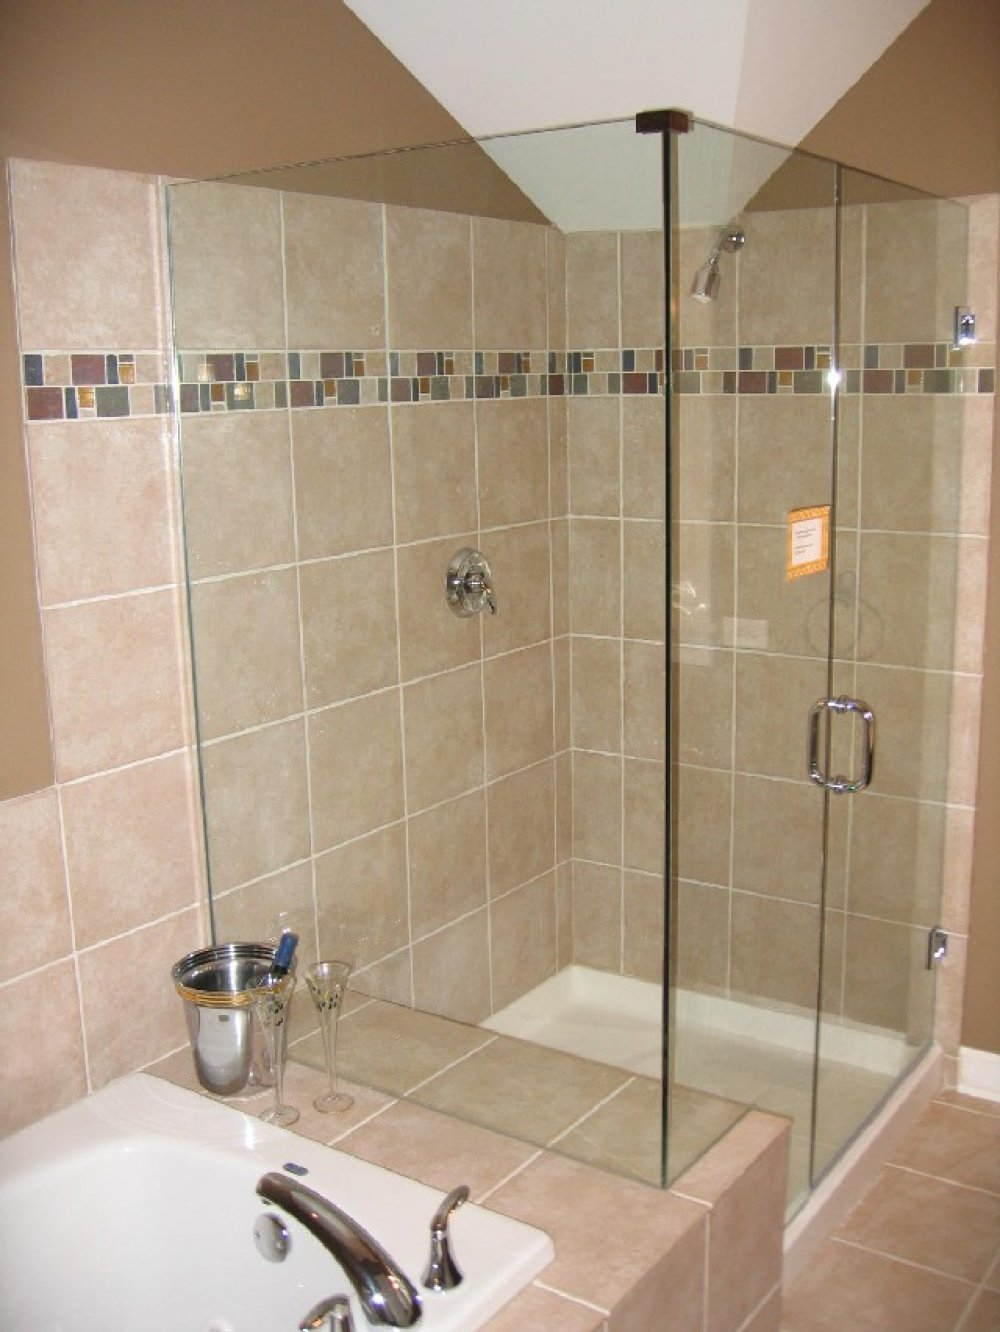 Bathroom-Tile-Ideas-for-Shower-Walls